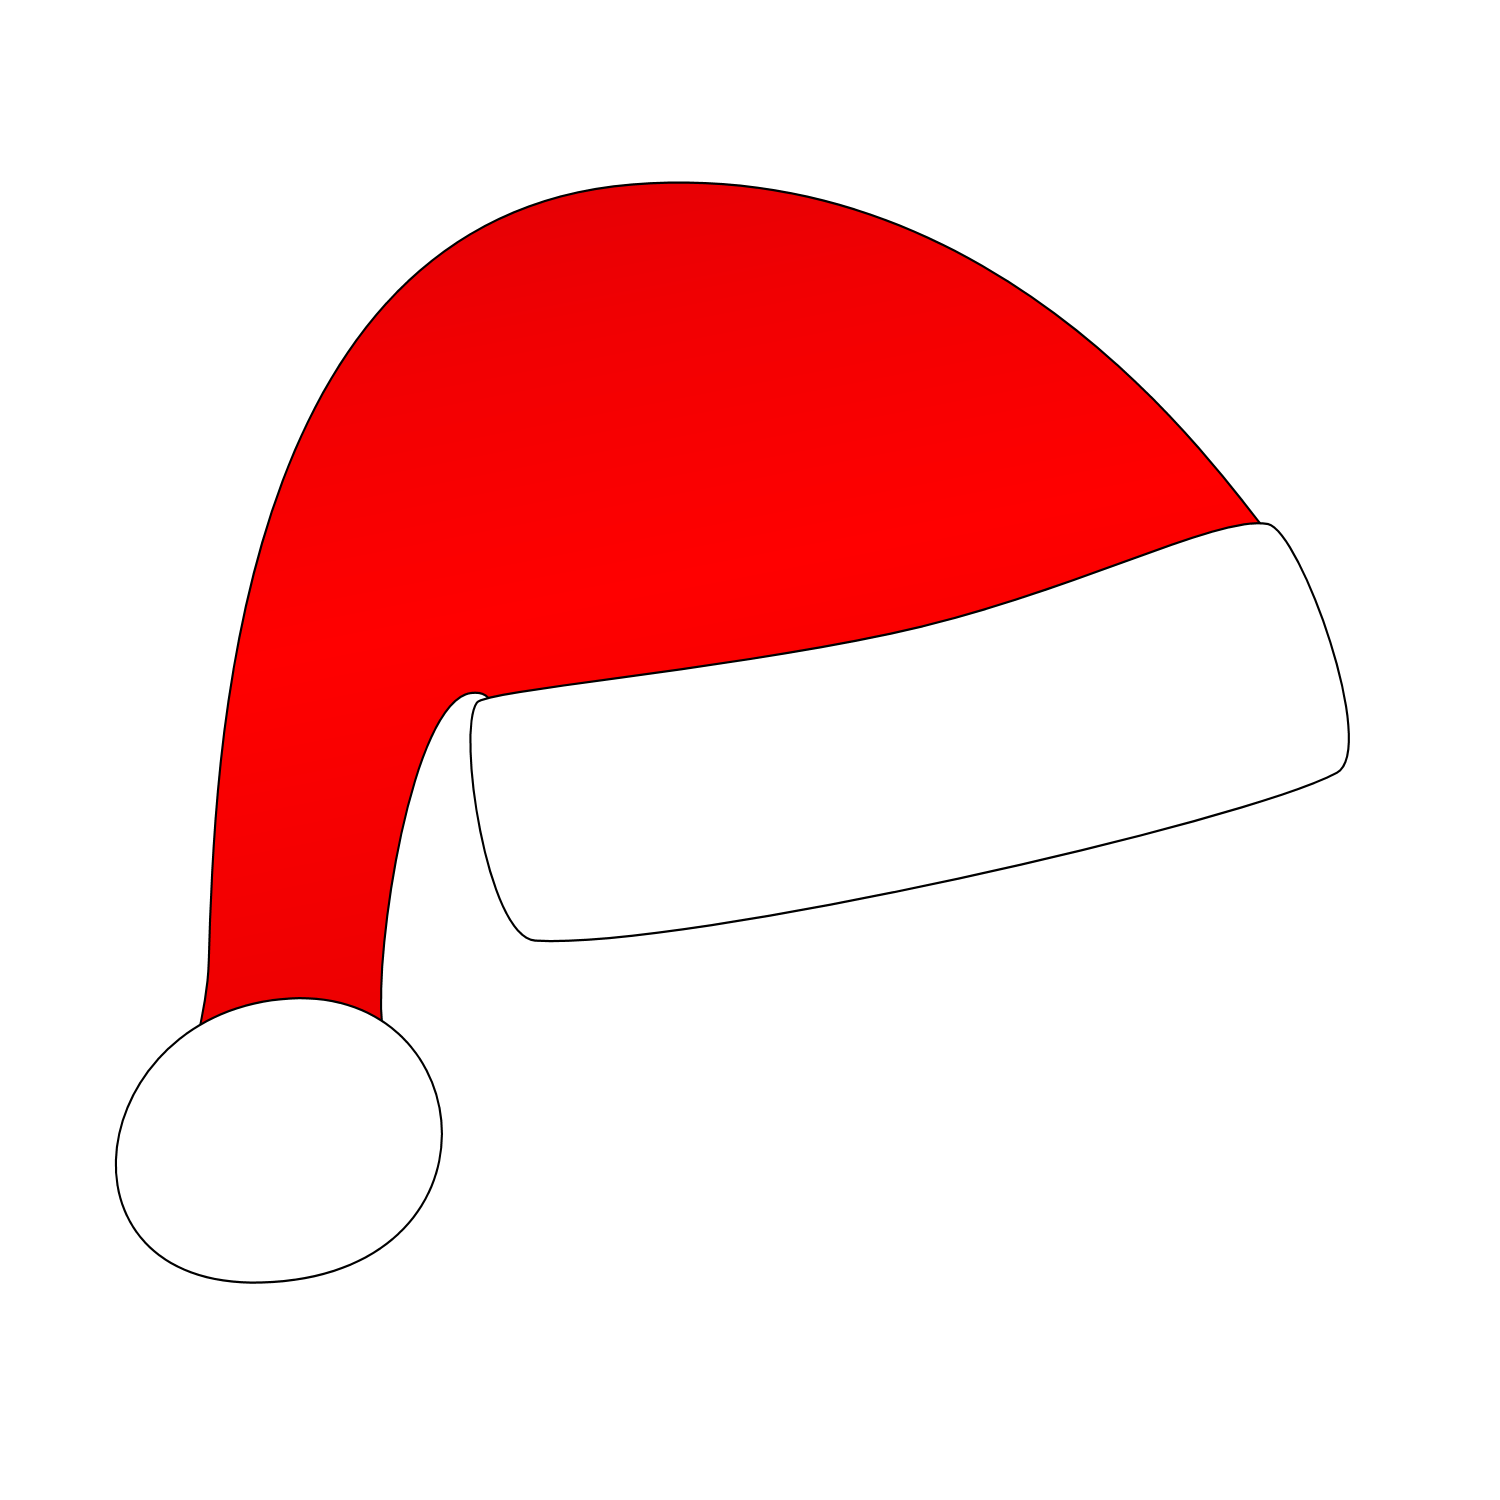 father christmas hat clipart - photo #21